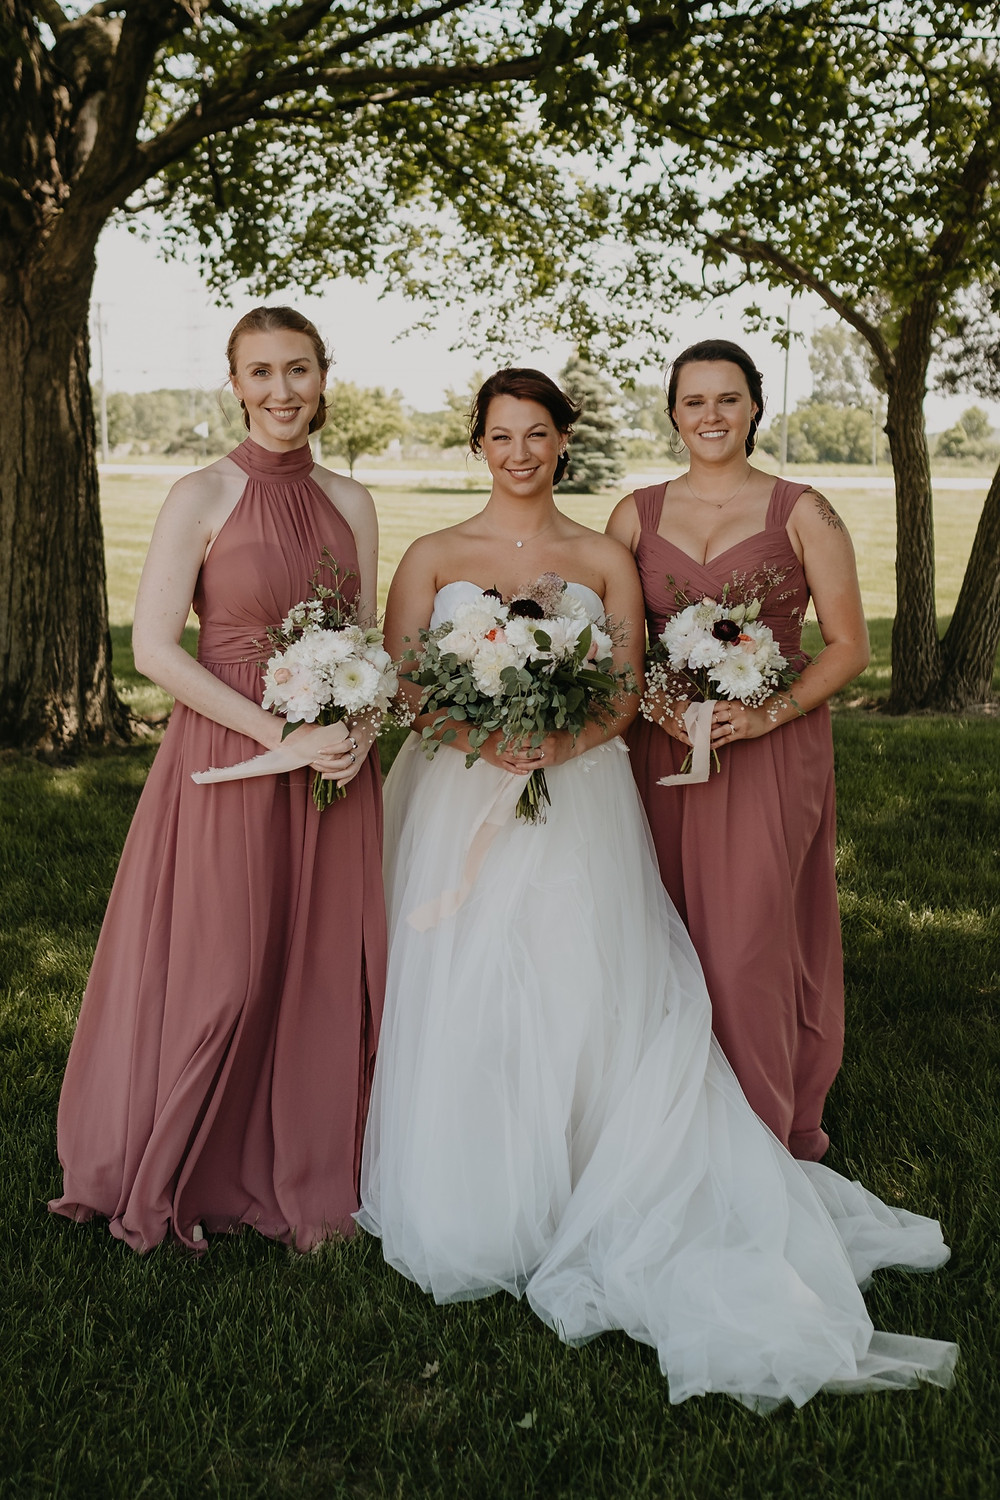 Bride with bridesmaids portraits. Photographed by Nicole Leanne Photography.